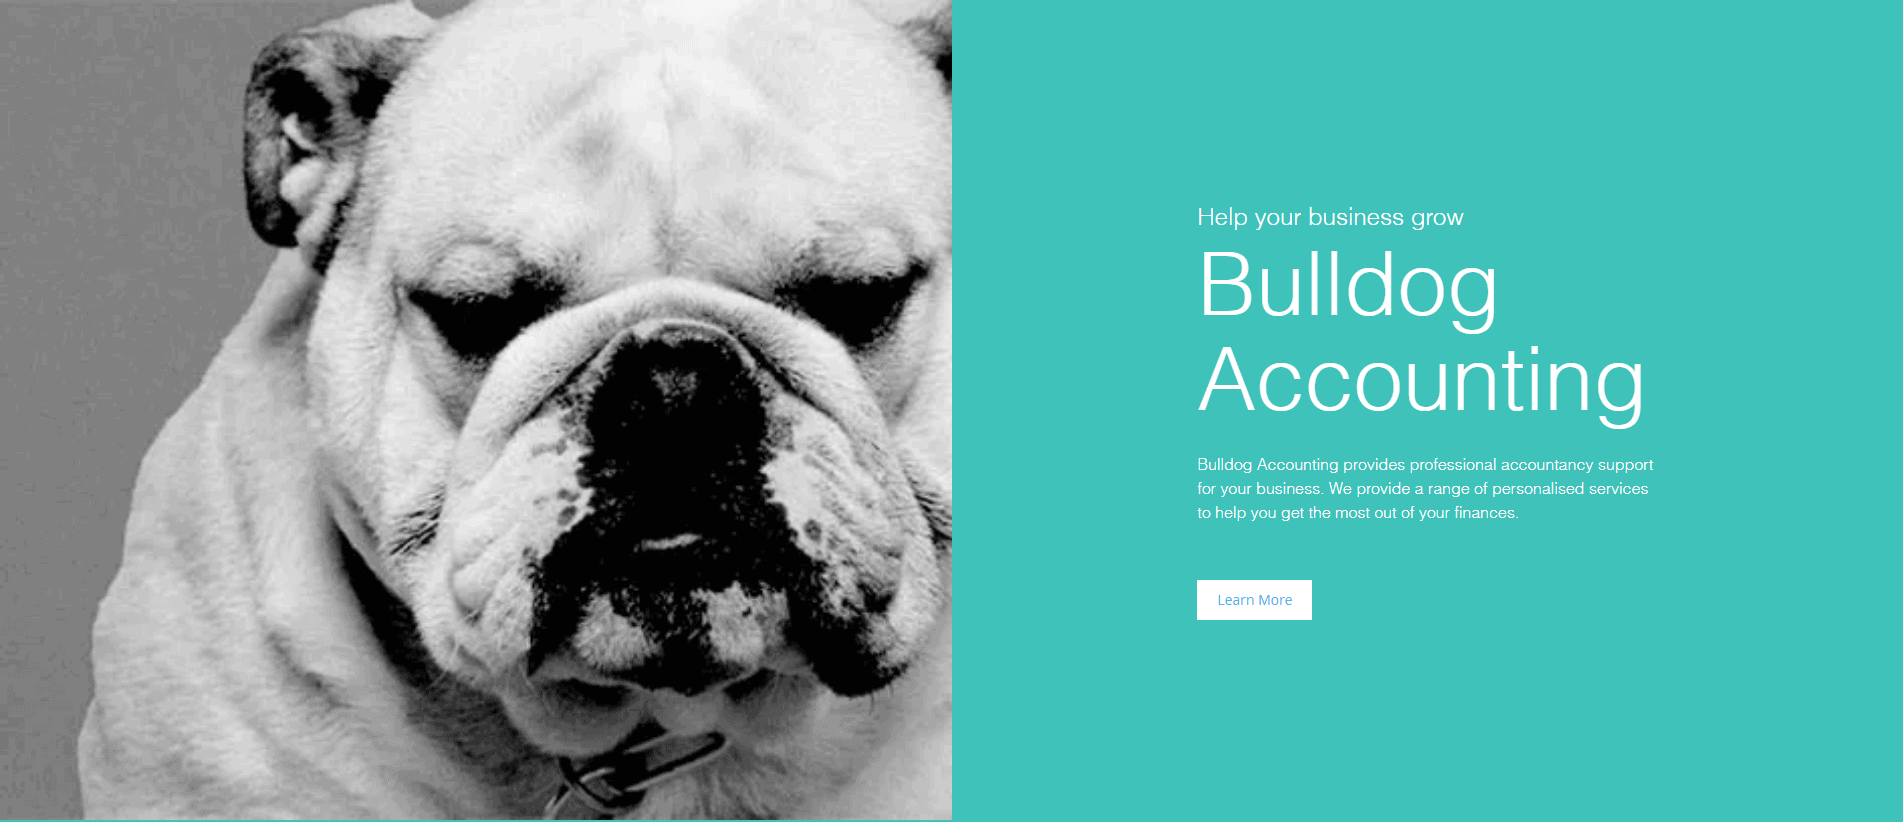 Bulldog Accounting Branding 1